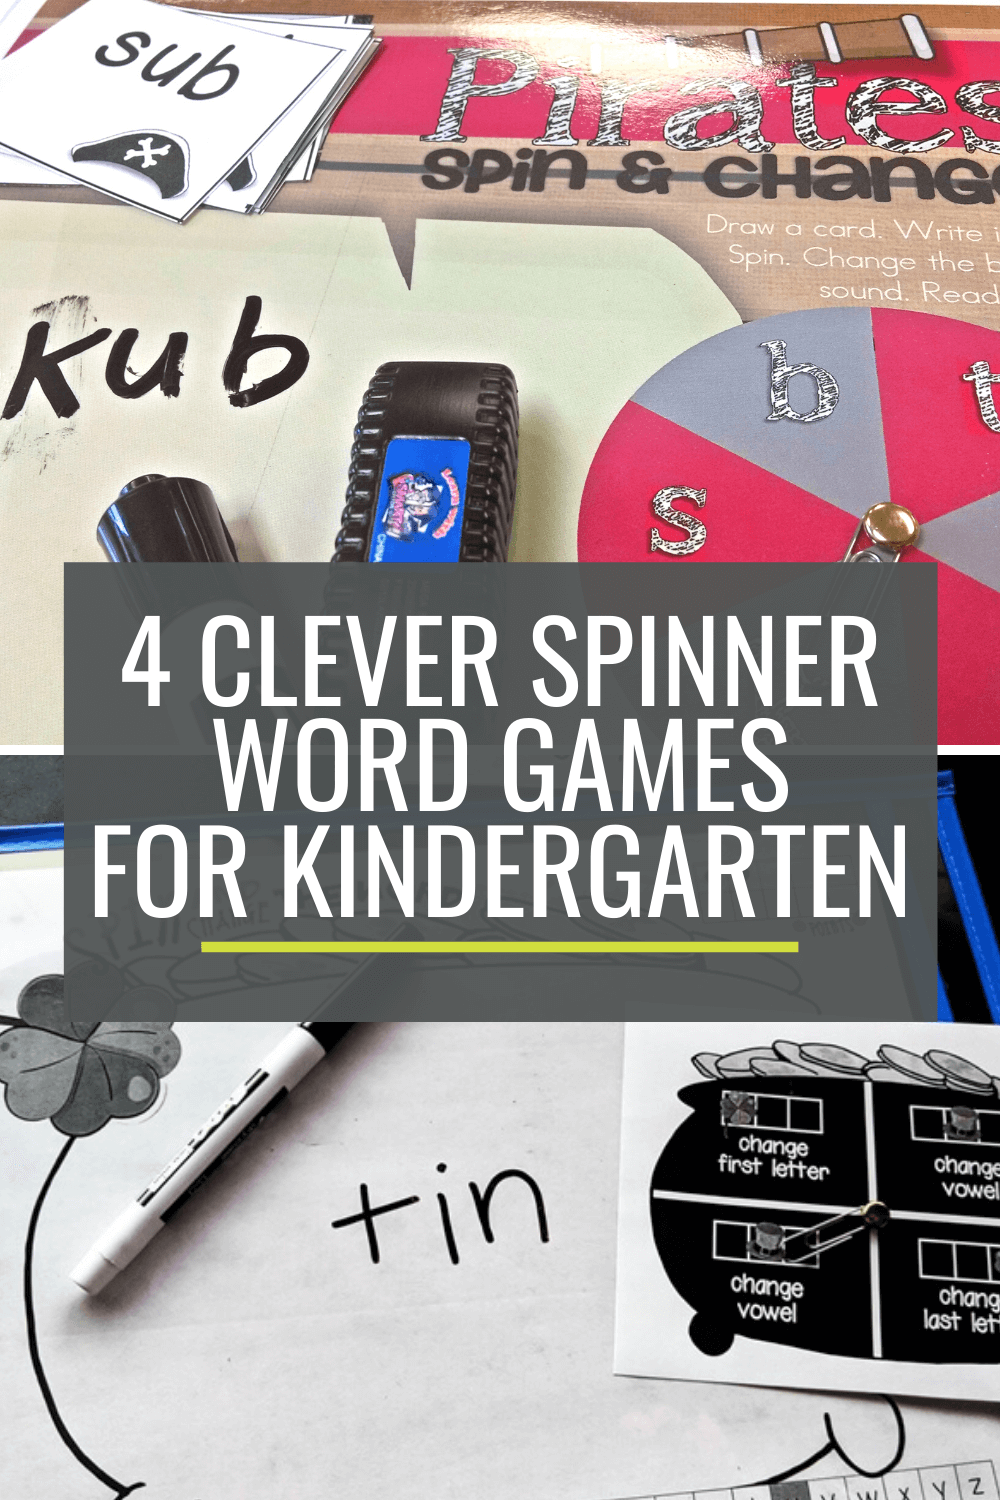 4 Clever Spinner Word Games for Kindergarten